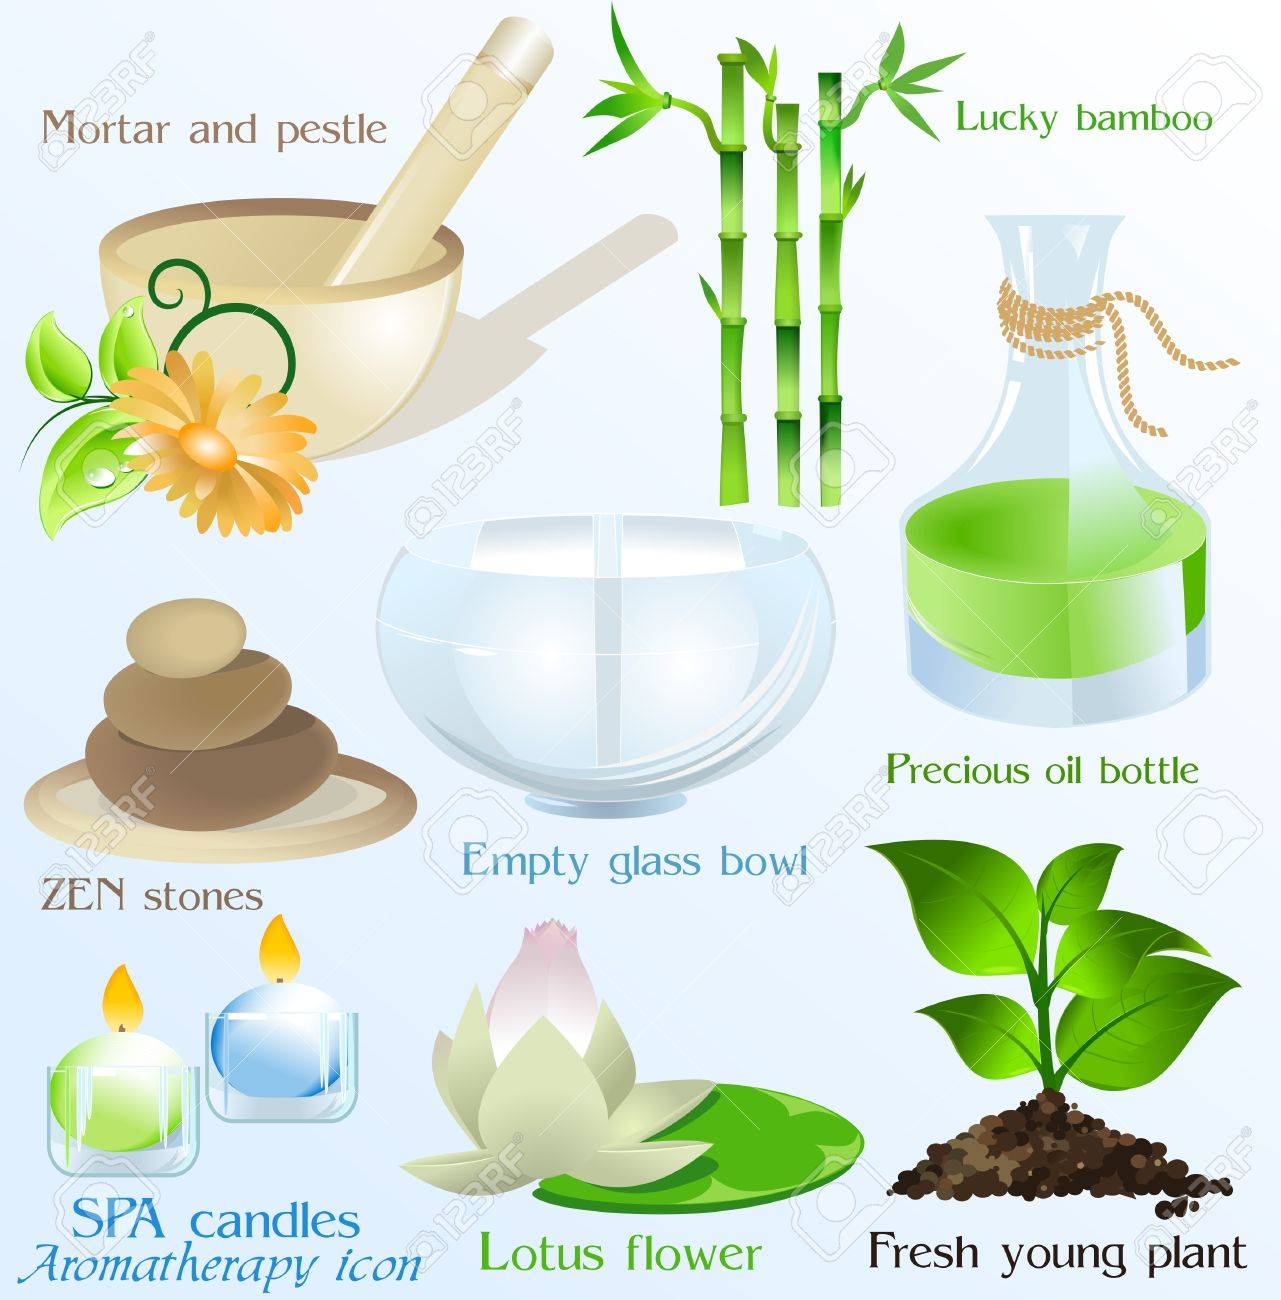 Spa icons/ objects vector set Stock Vector - 6286729